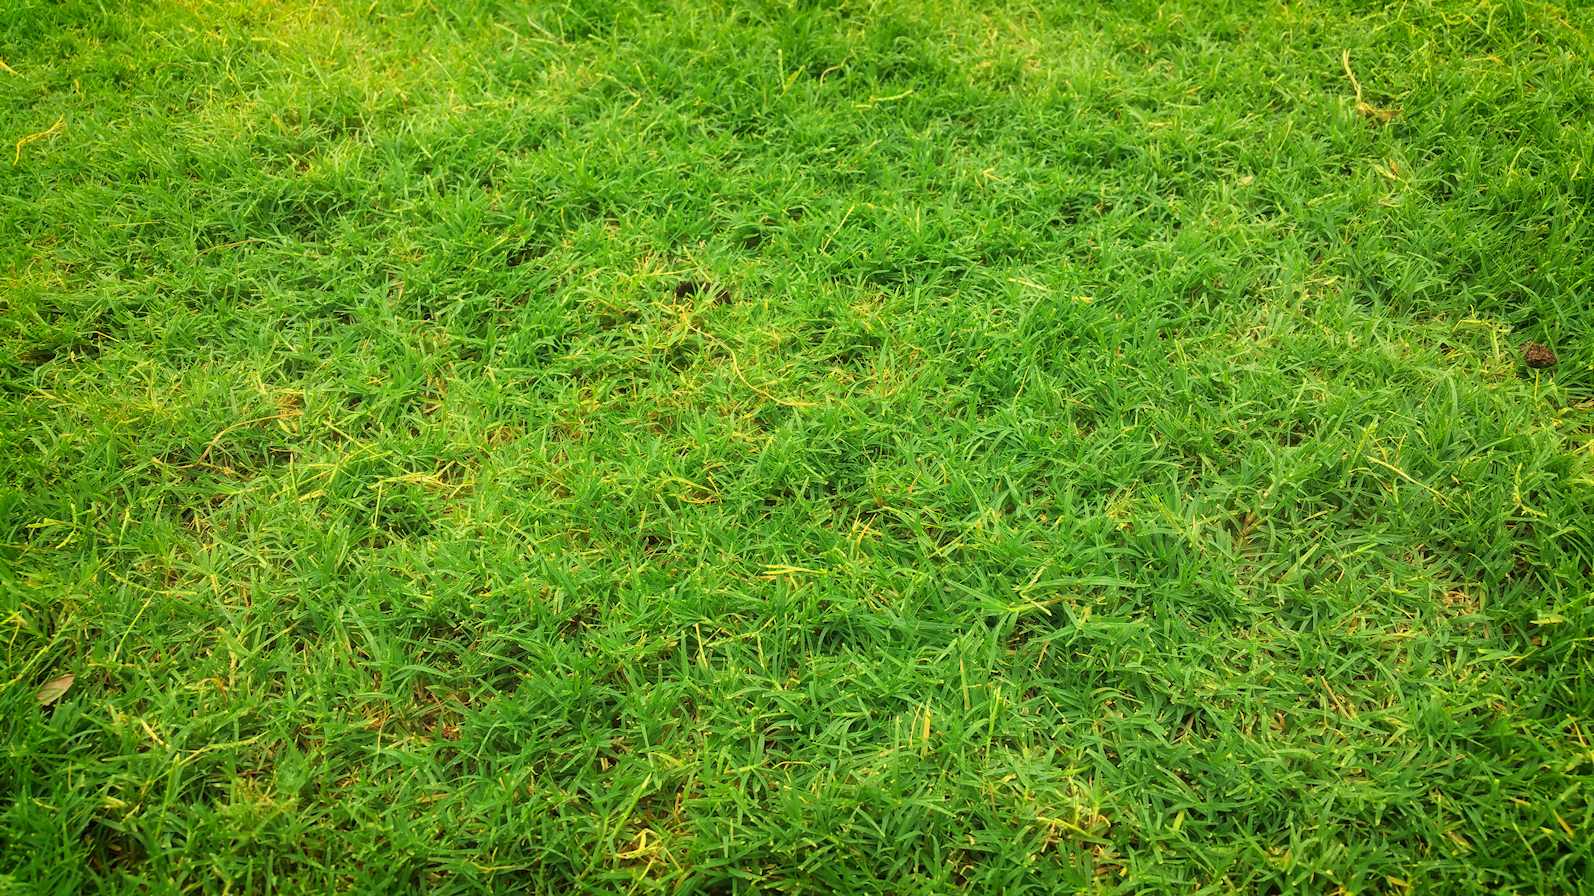 Lawn rating: straggly.